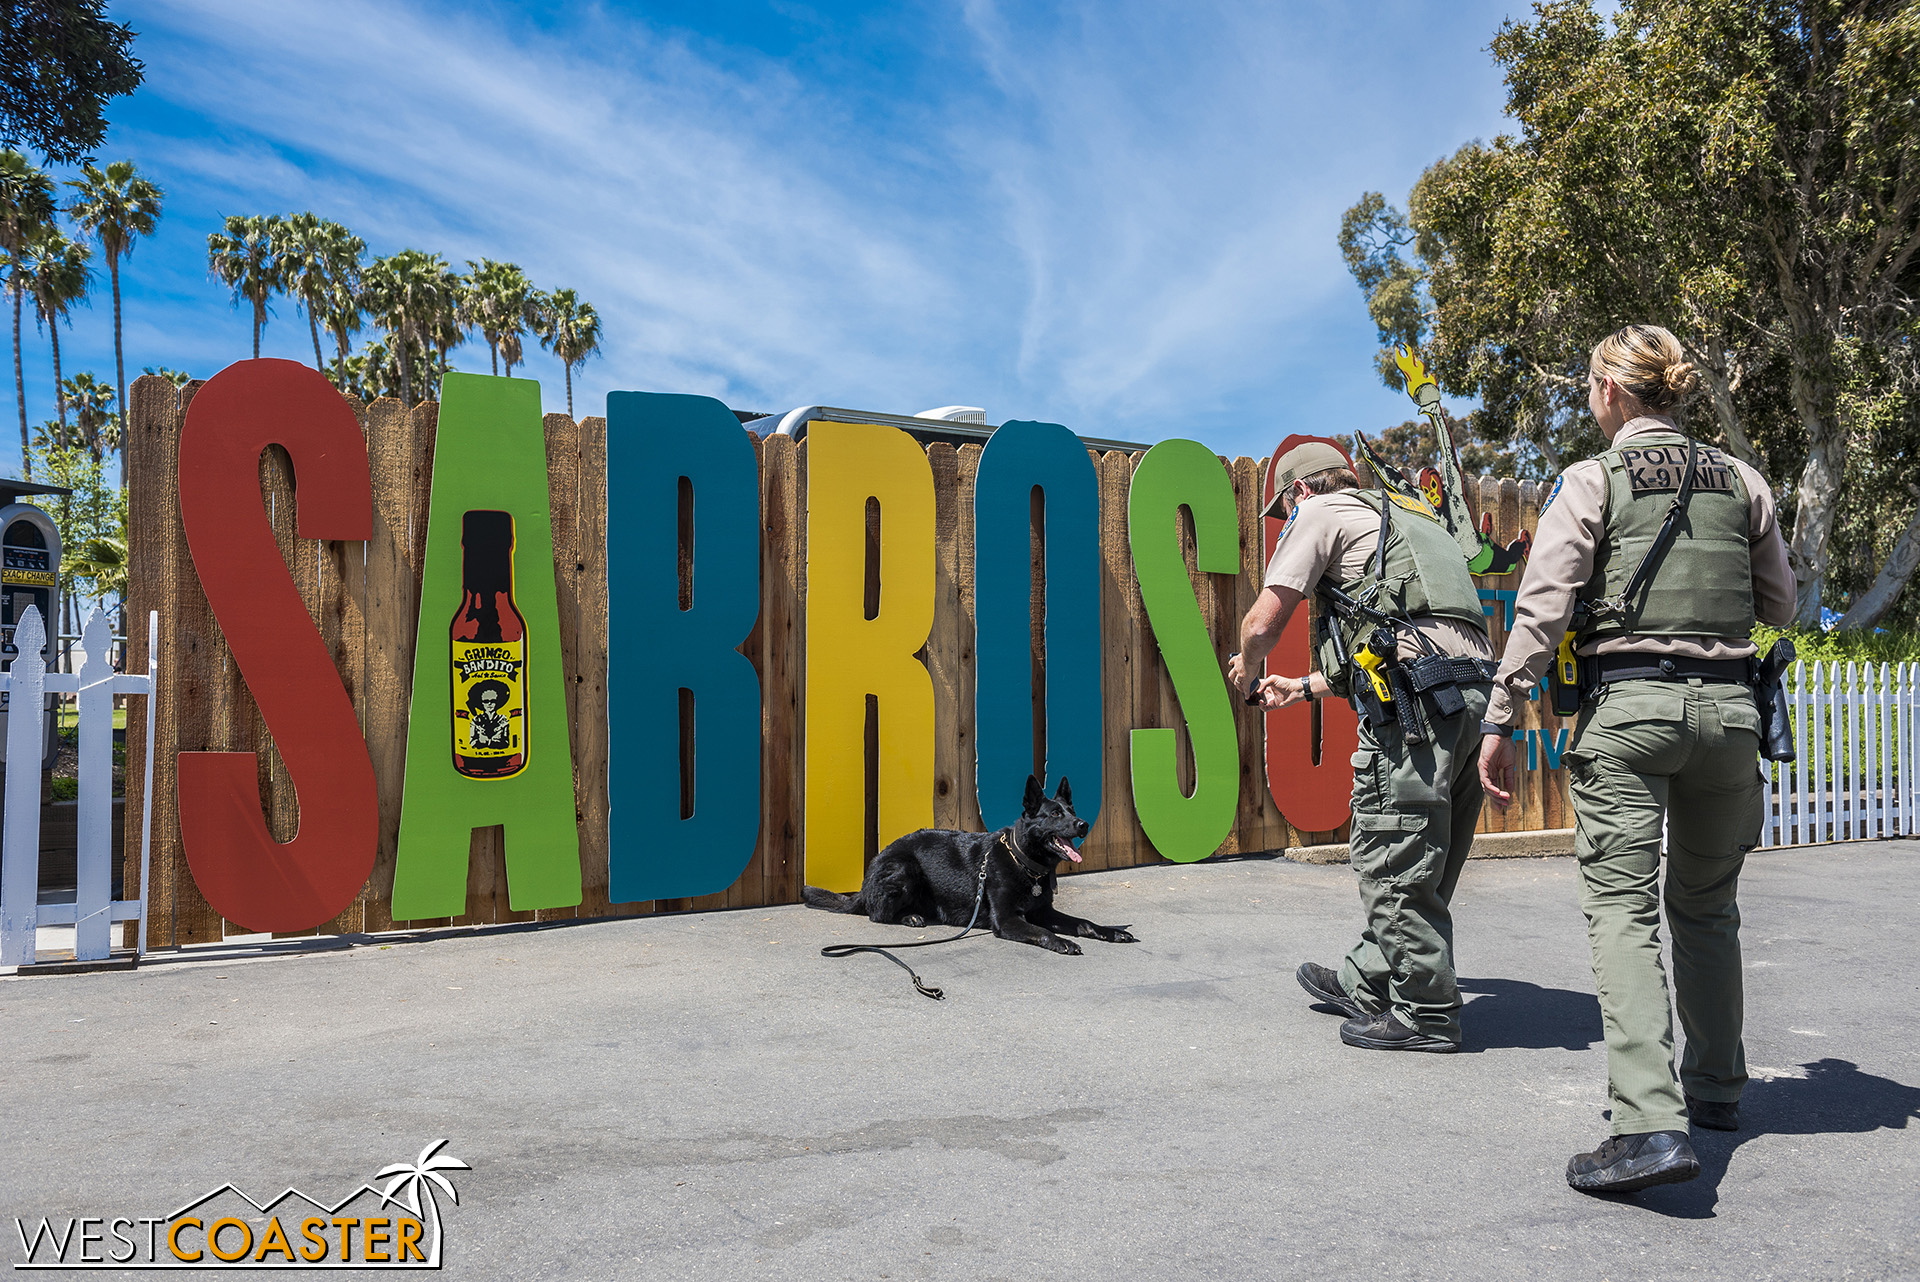 The place to be: Sabroso Festival—even for K9 puppers!